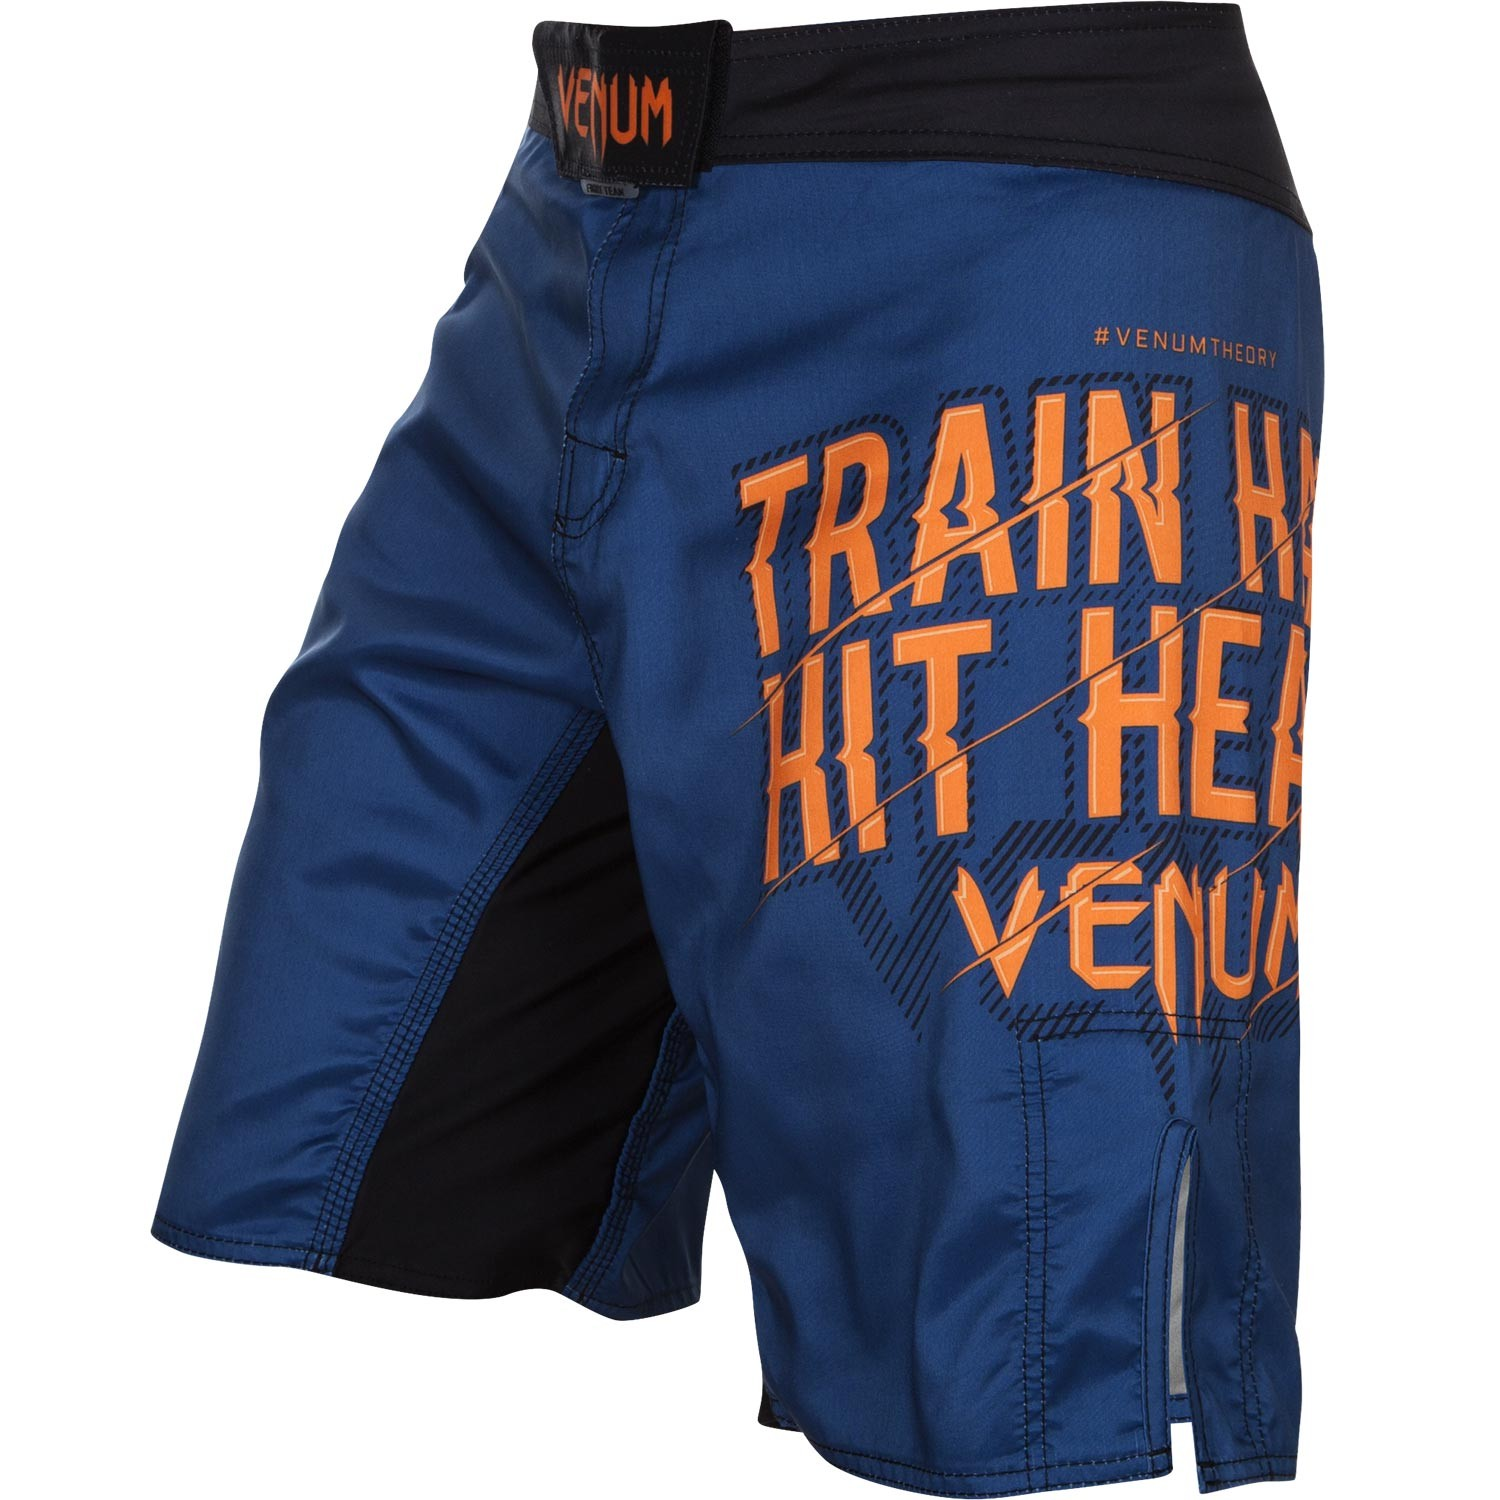 Шорты ММА Venum Train Hard Hit Heavy Blue